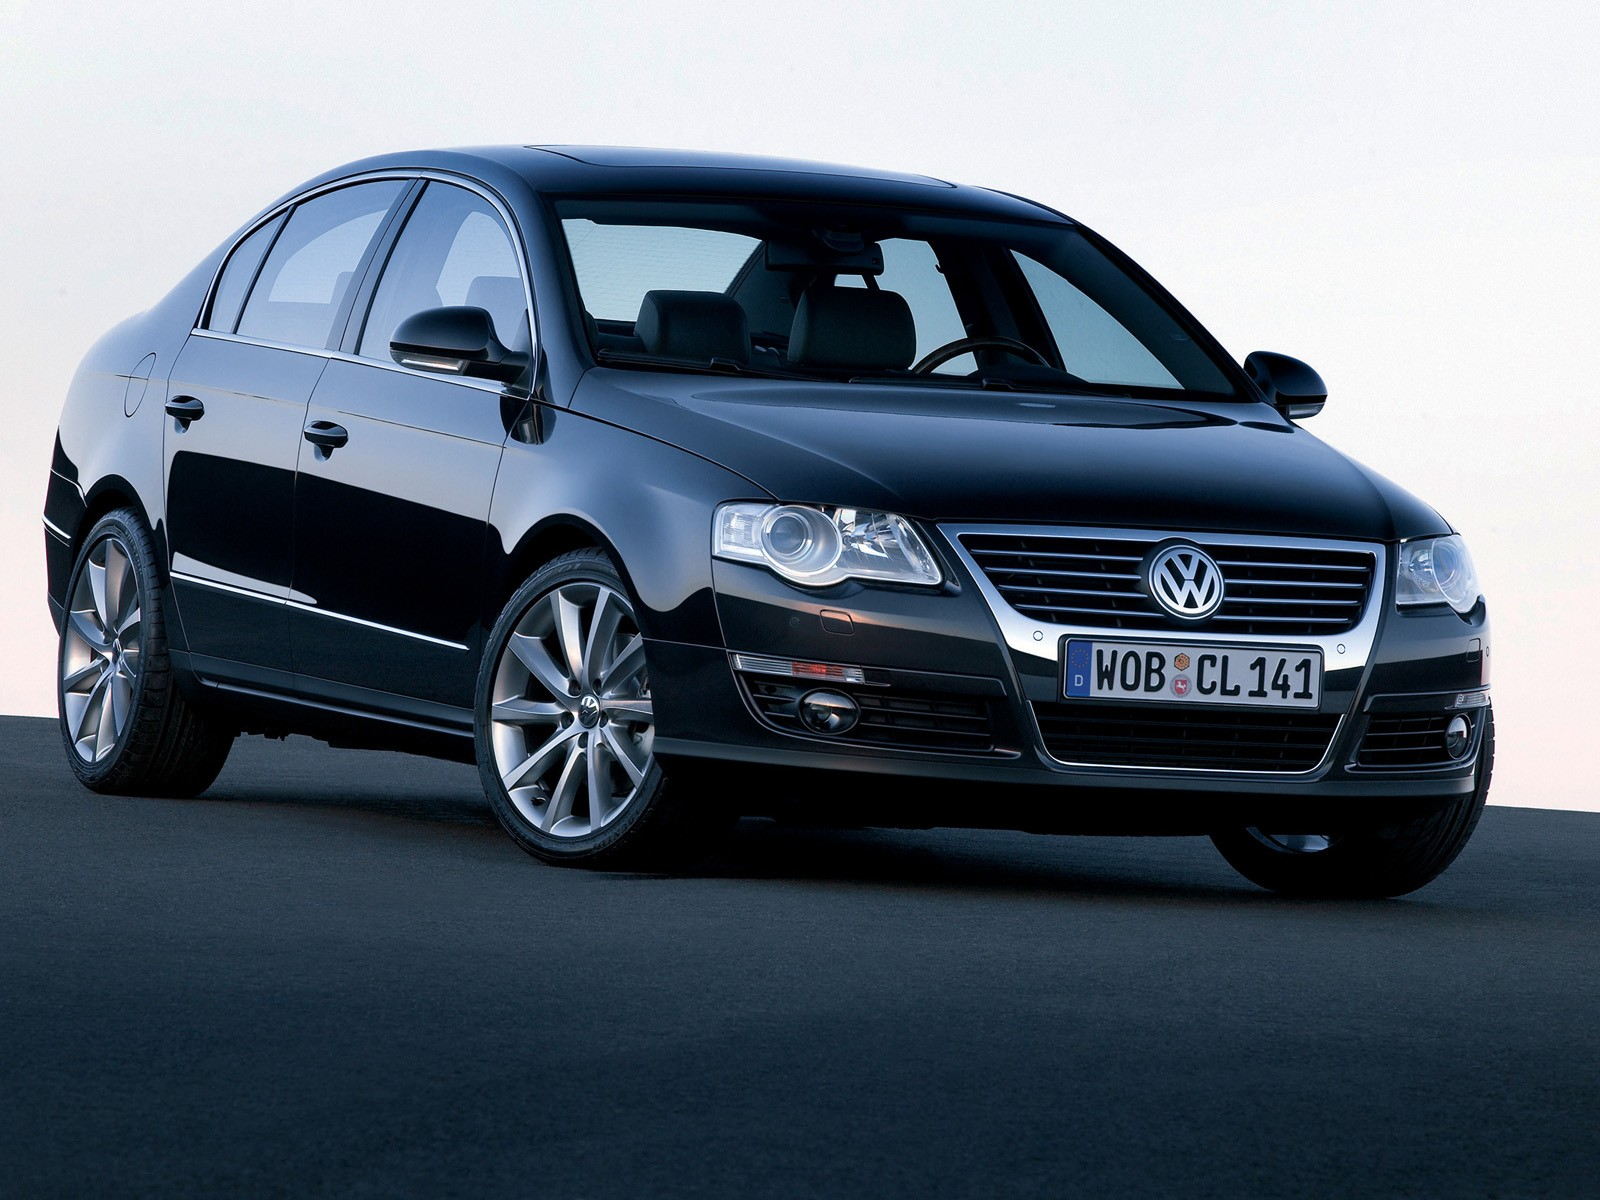 Volkswagen Passat 2006 photo - 2